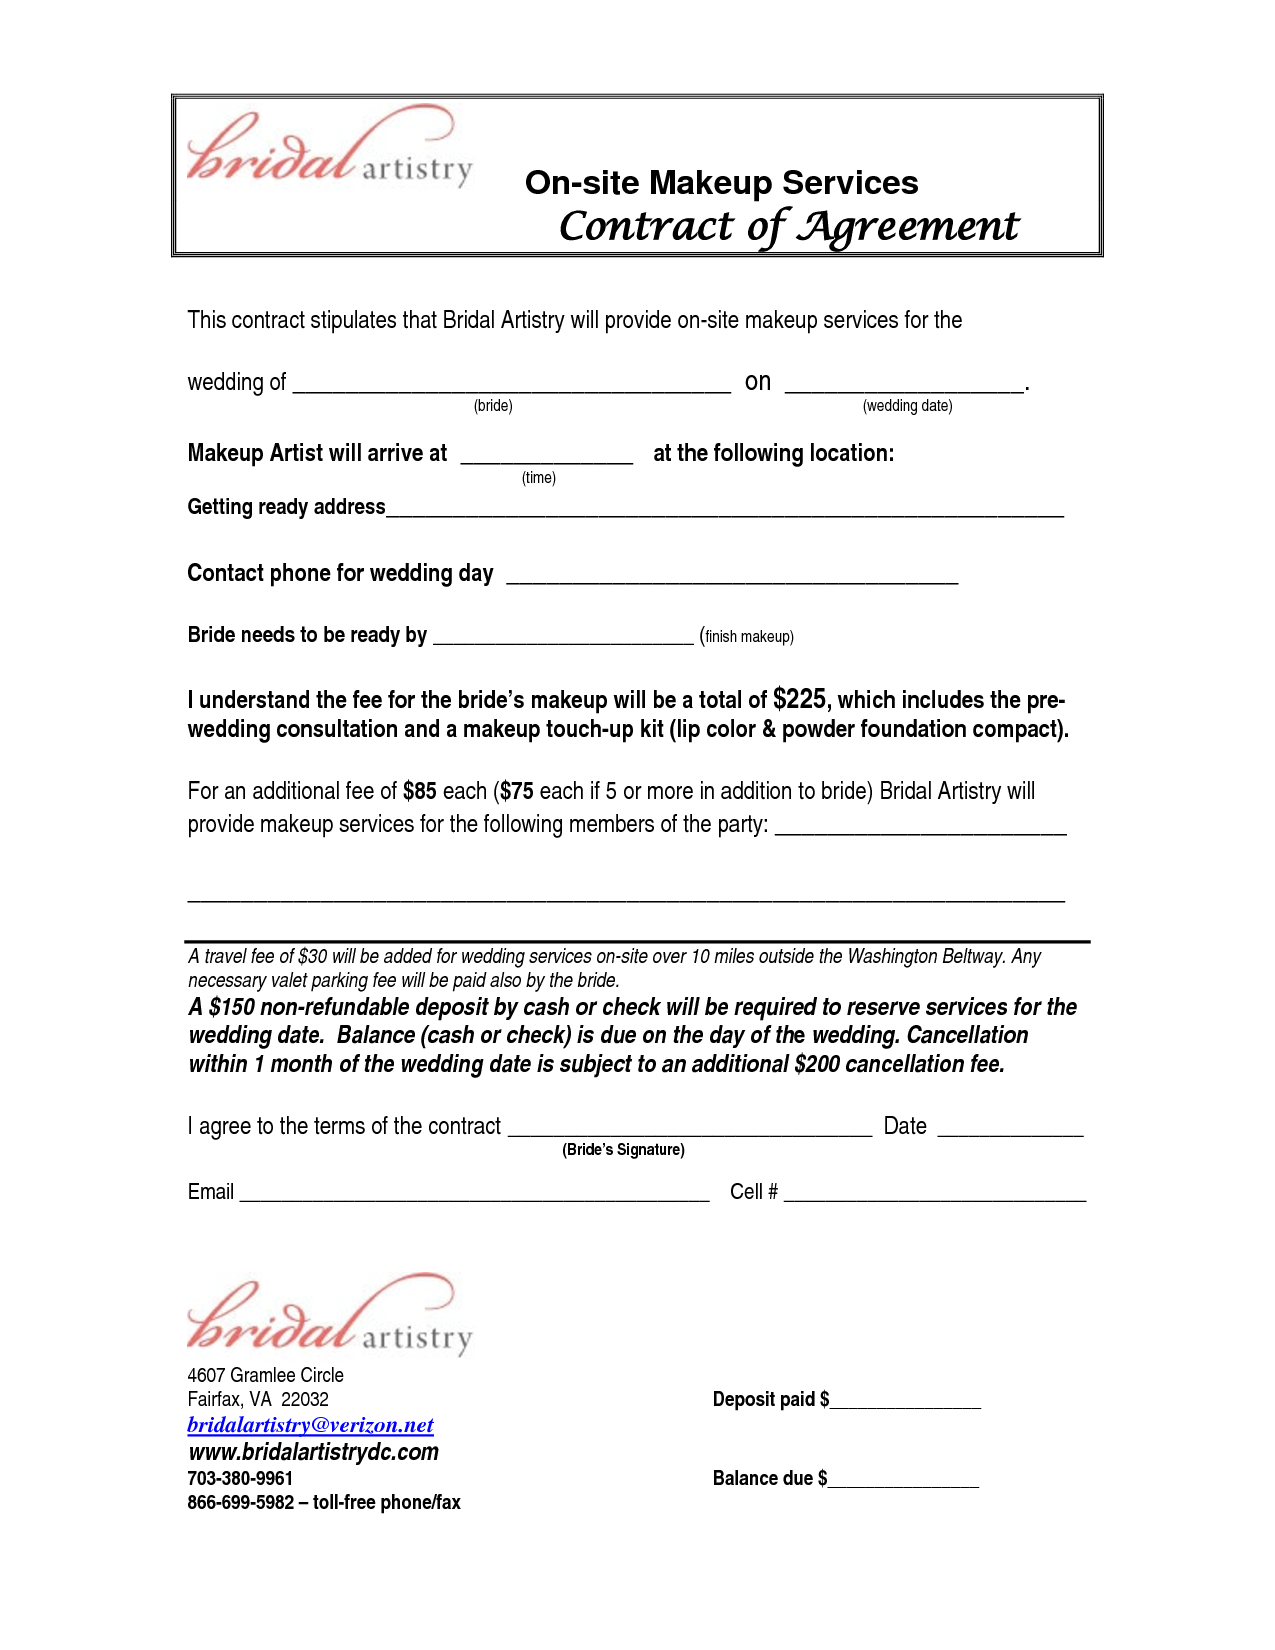 bridalhaircotract | site makeup services contract agreement